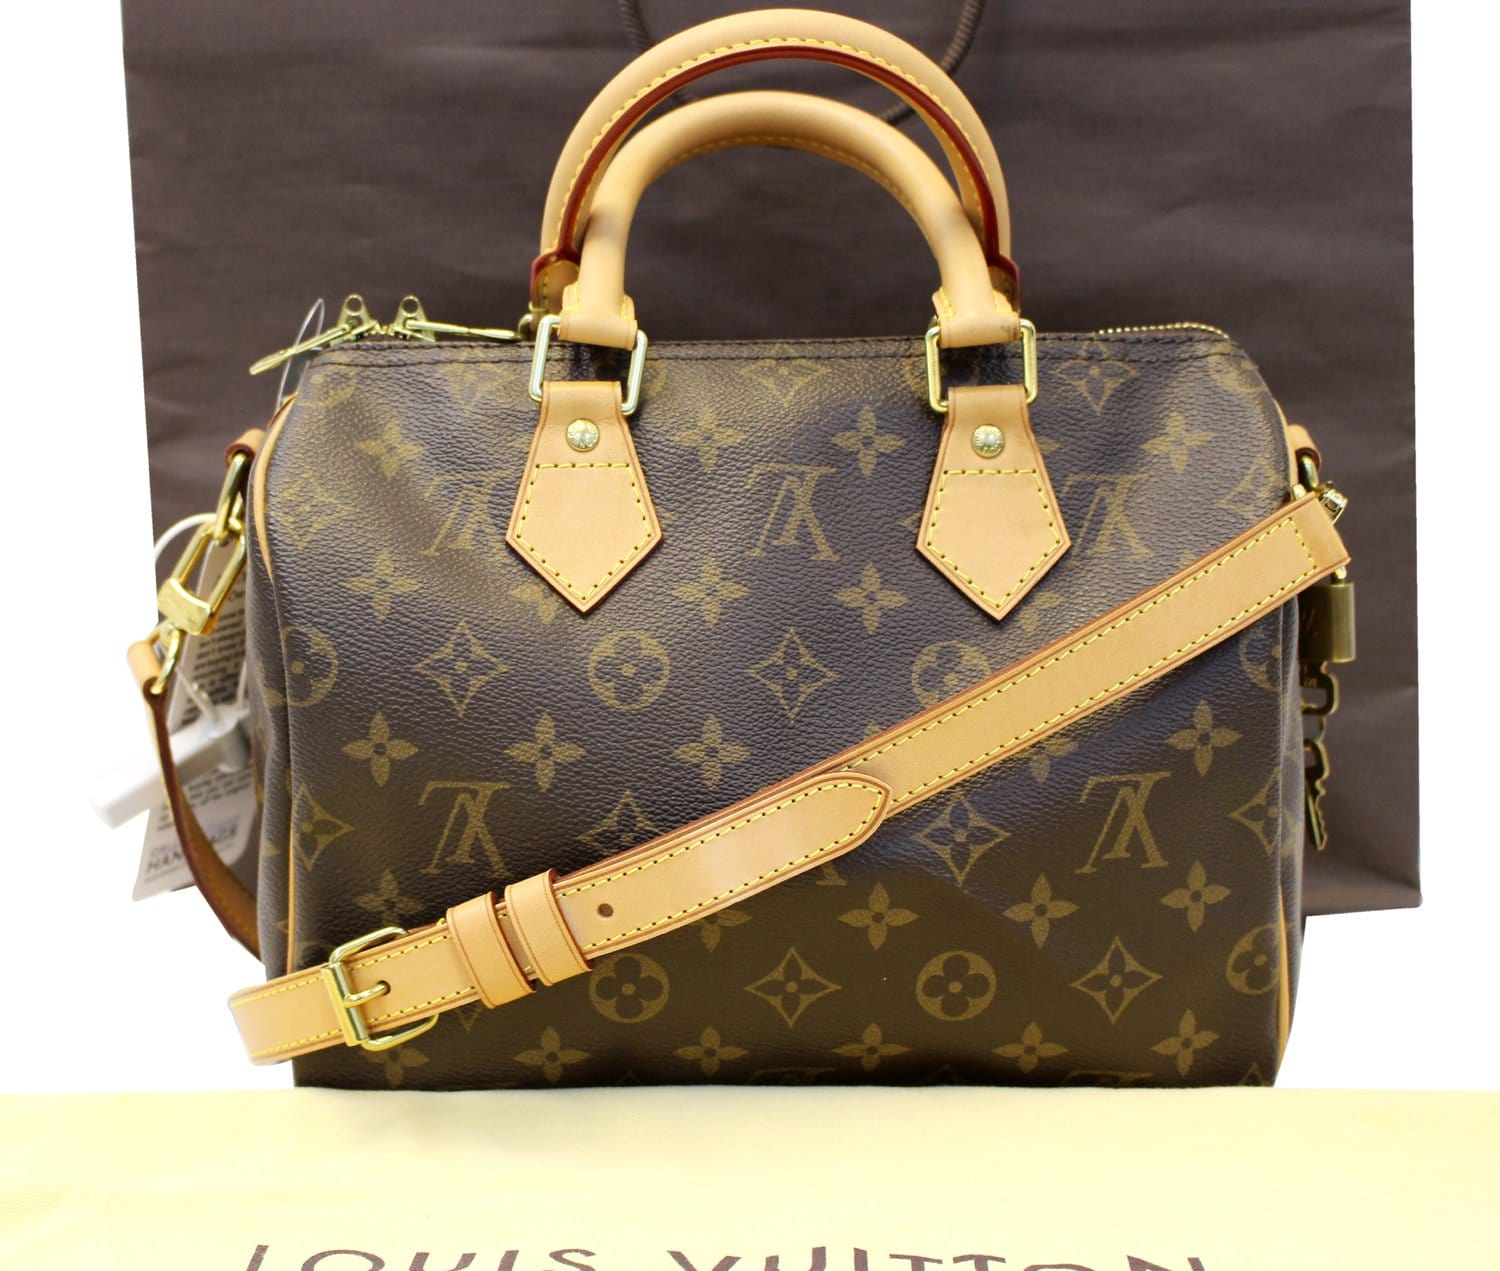 64c0859afa09 Authentic LOUIS VUITTON Monogram Speedy 25 Bandouliere Satchel Bag TT1748